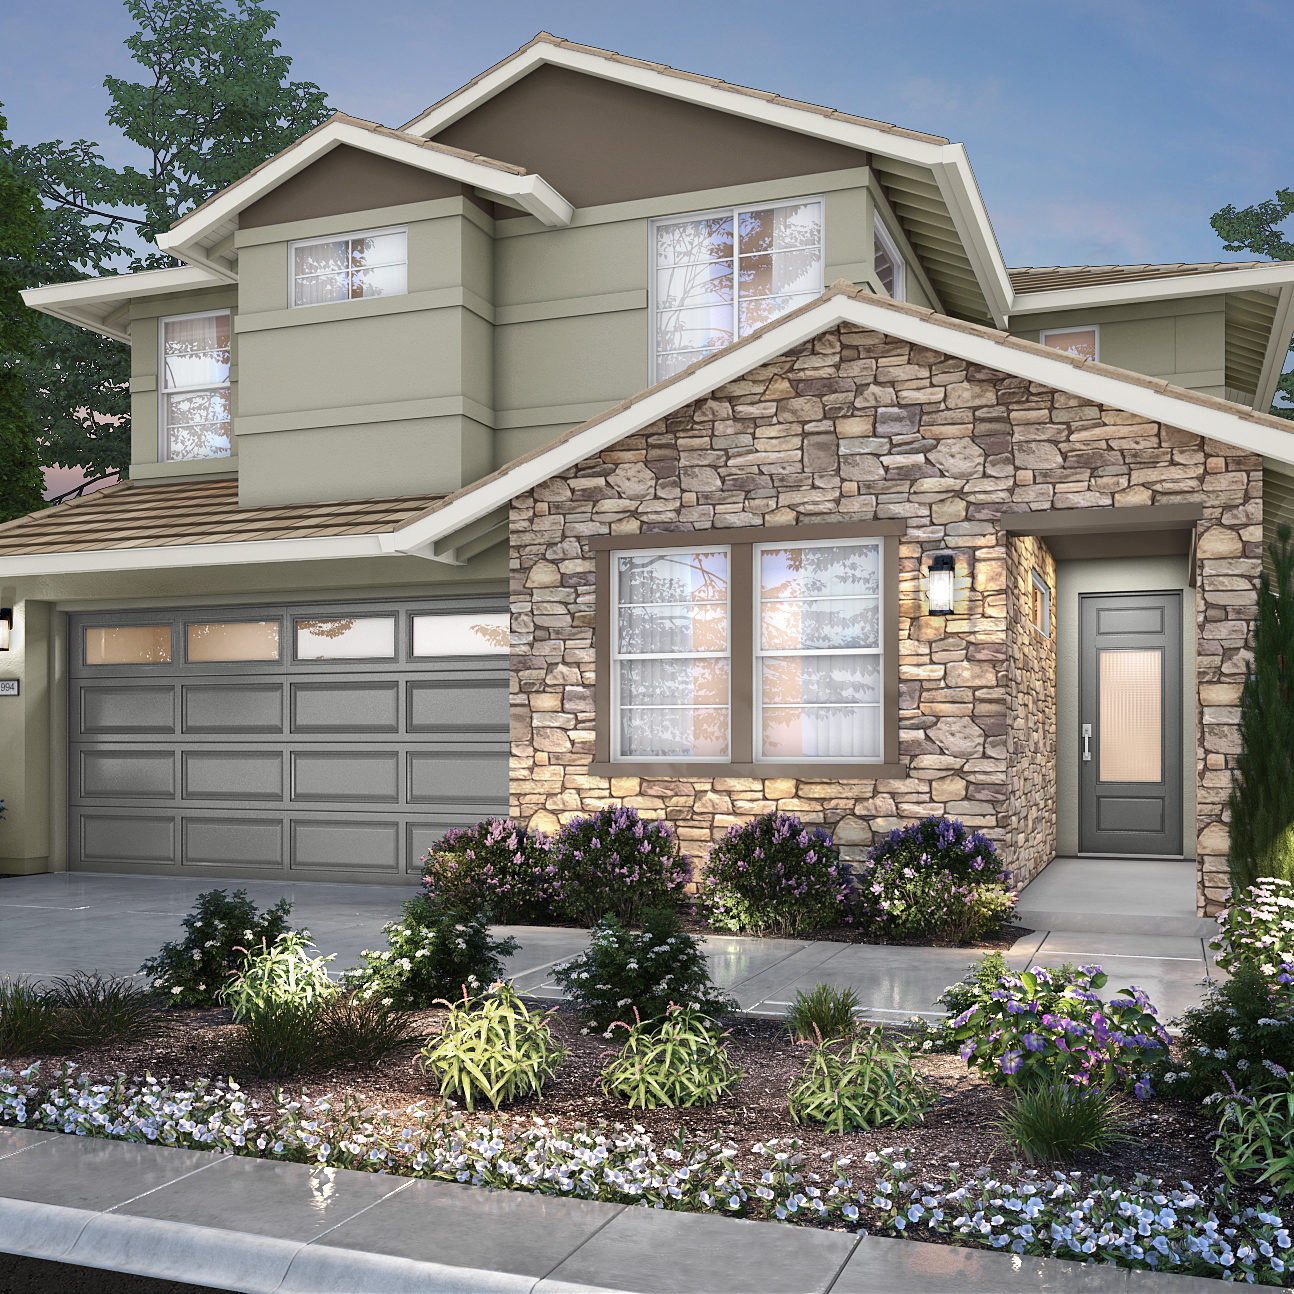 Pictured is a new home at Elan Montelena. Learn more about these beautiful new homes.